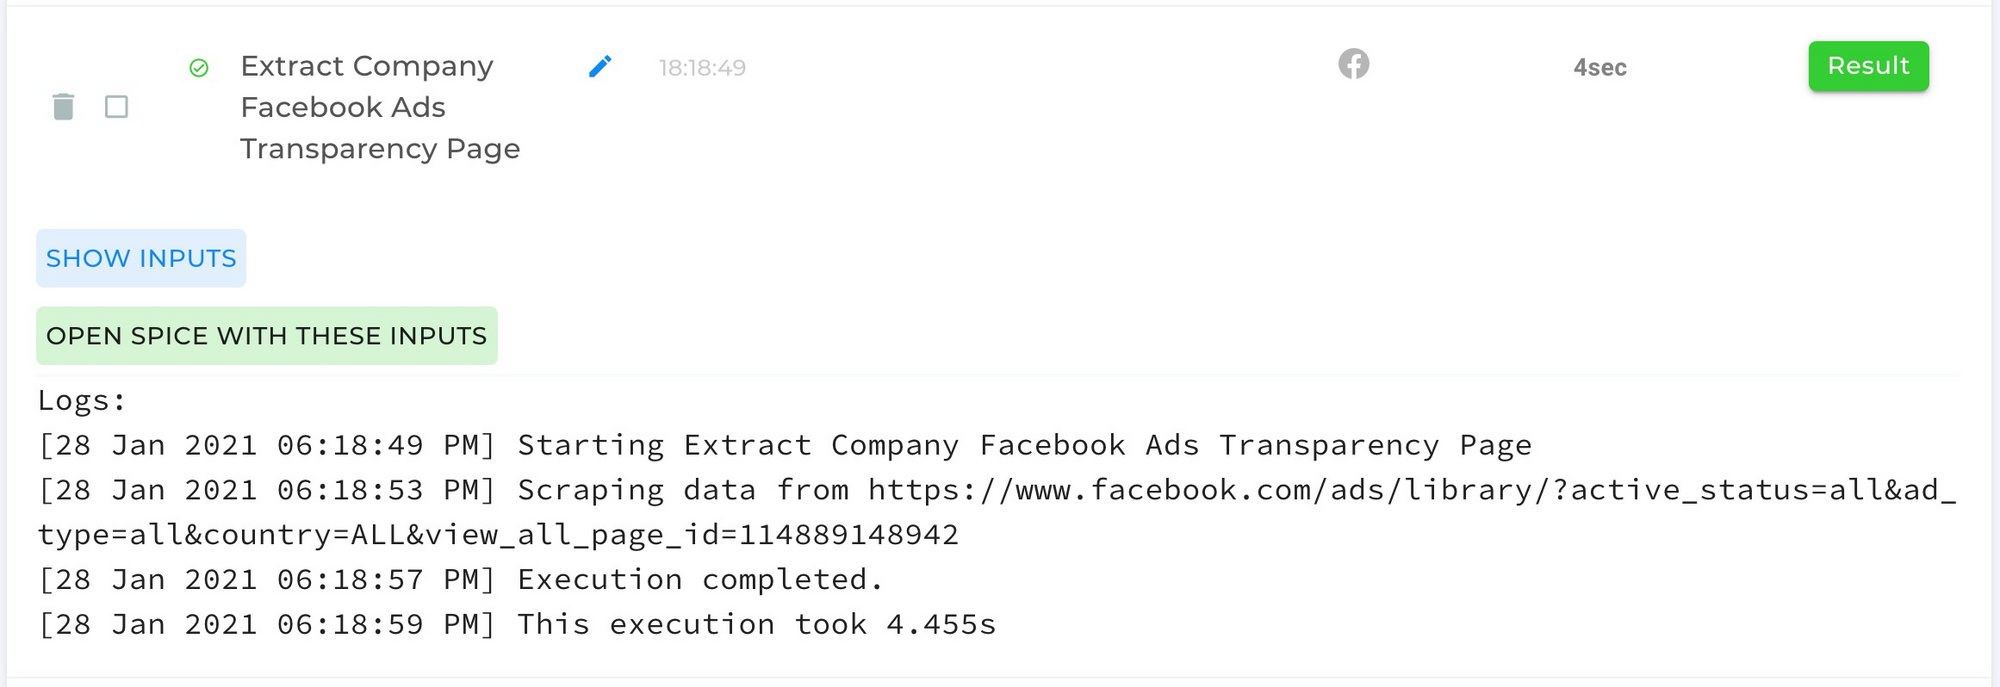 Extract-Company-Facebook-Ads-Transparency-Page-logs